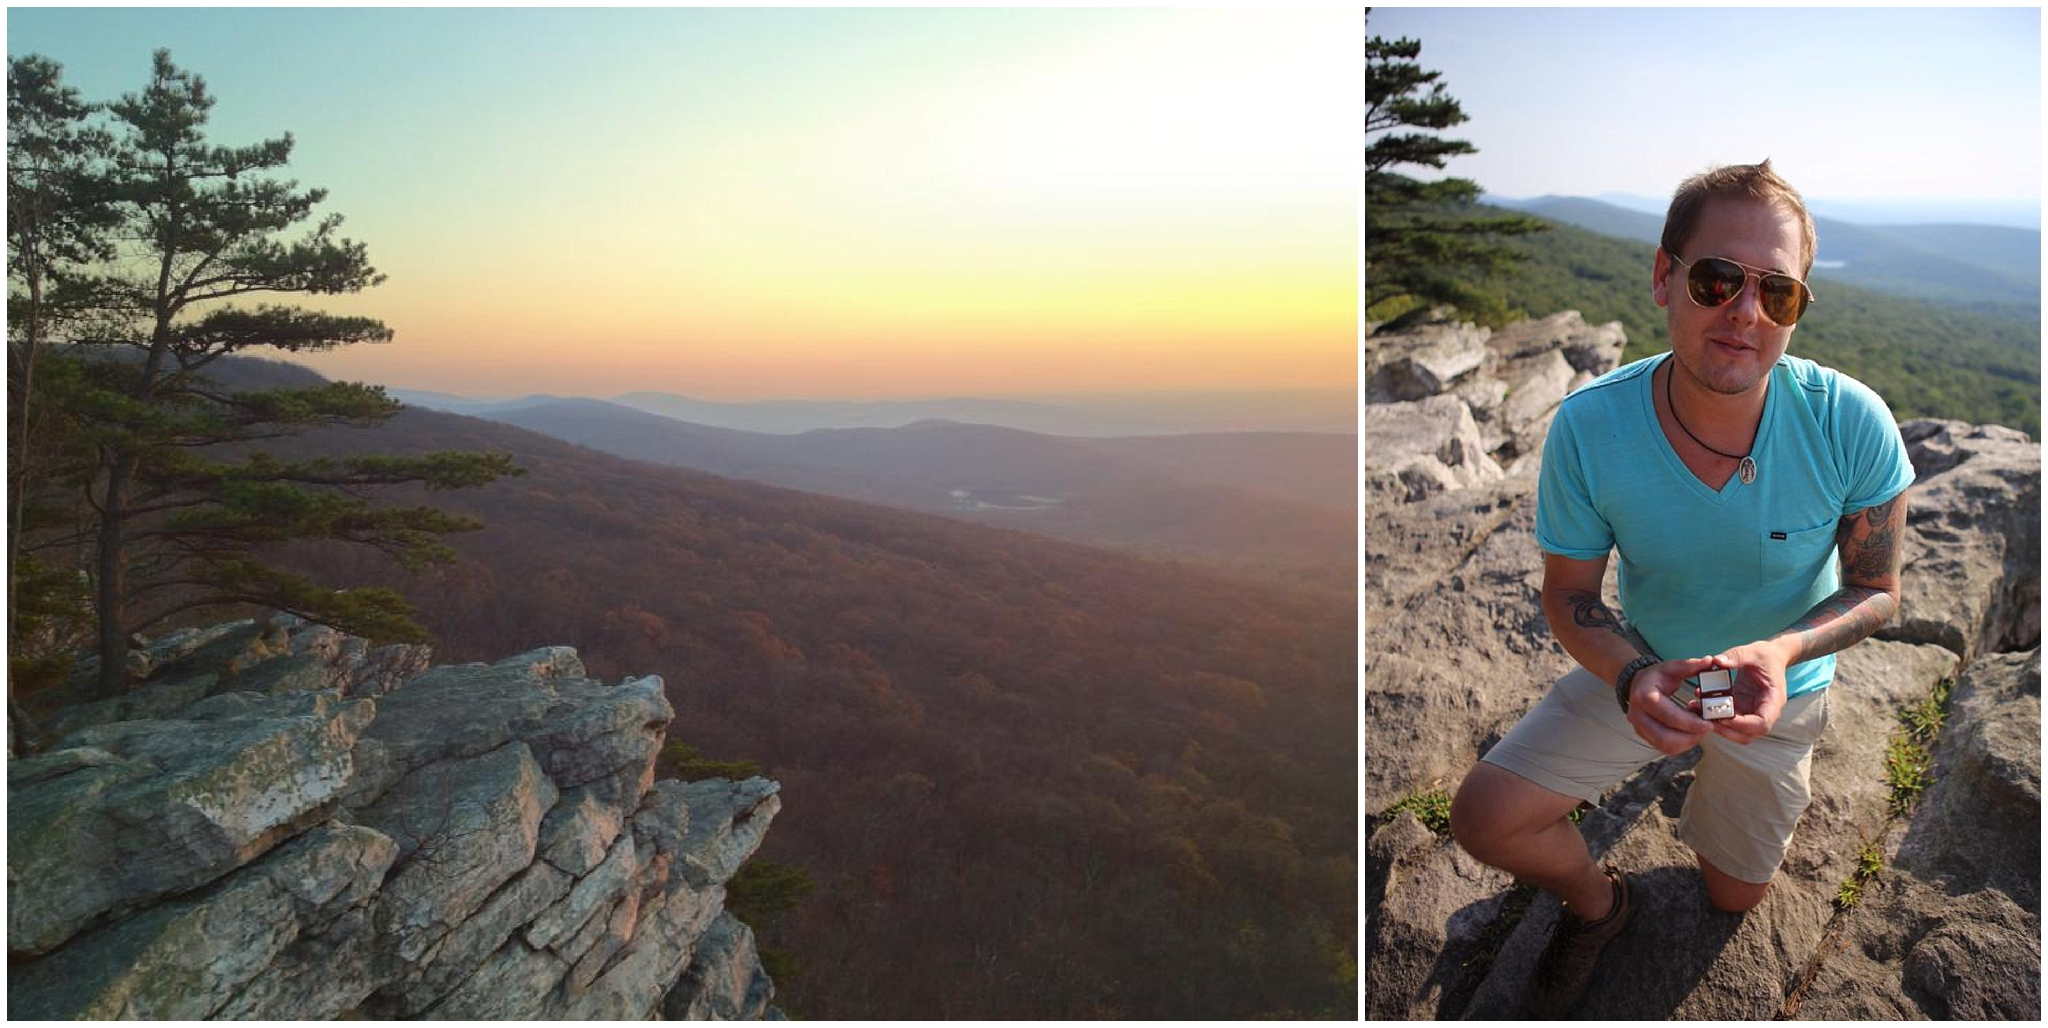 Left, the view from a sunset hike at Annapolis Rocks. Right, Andrew proposing.